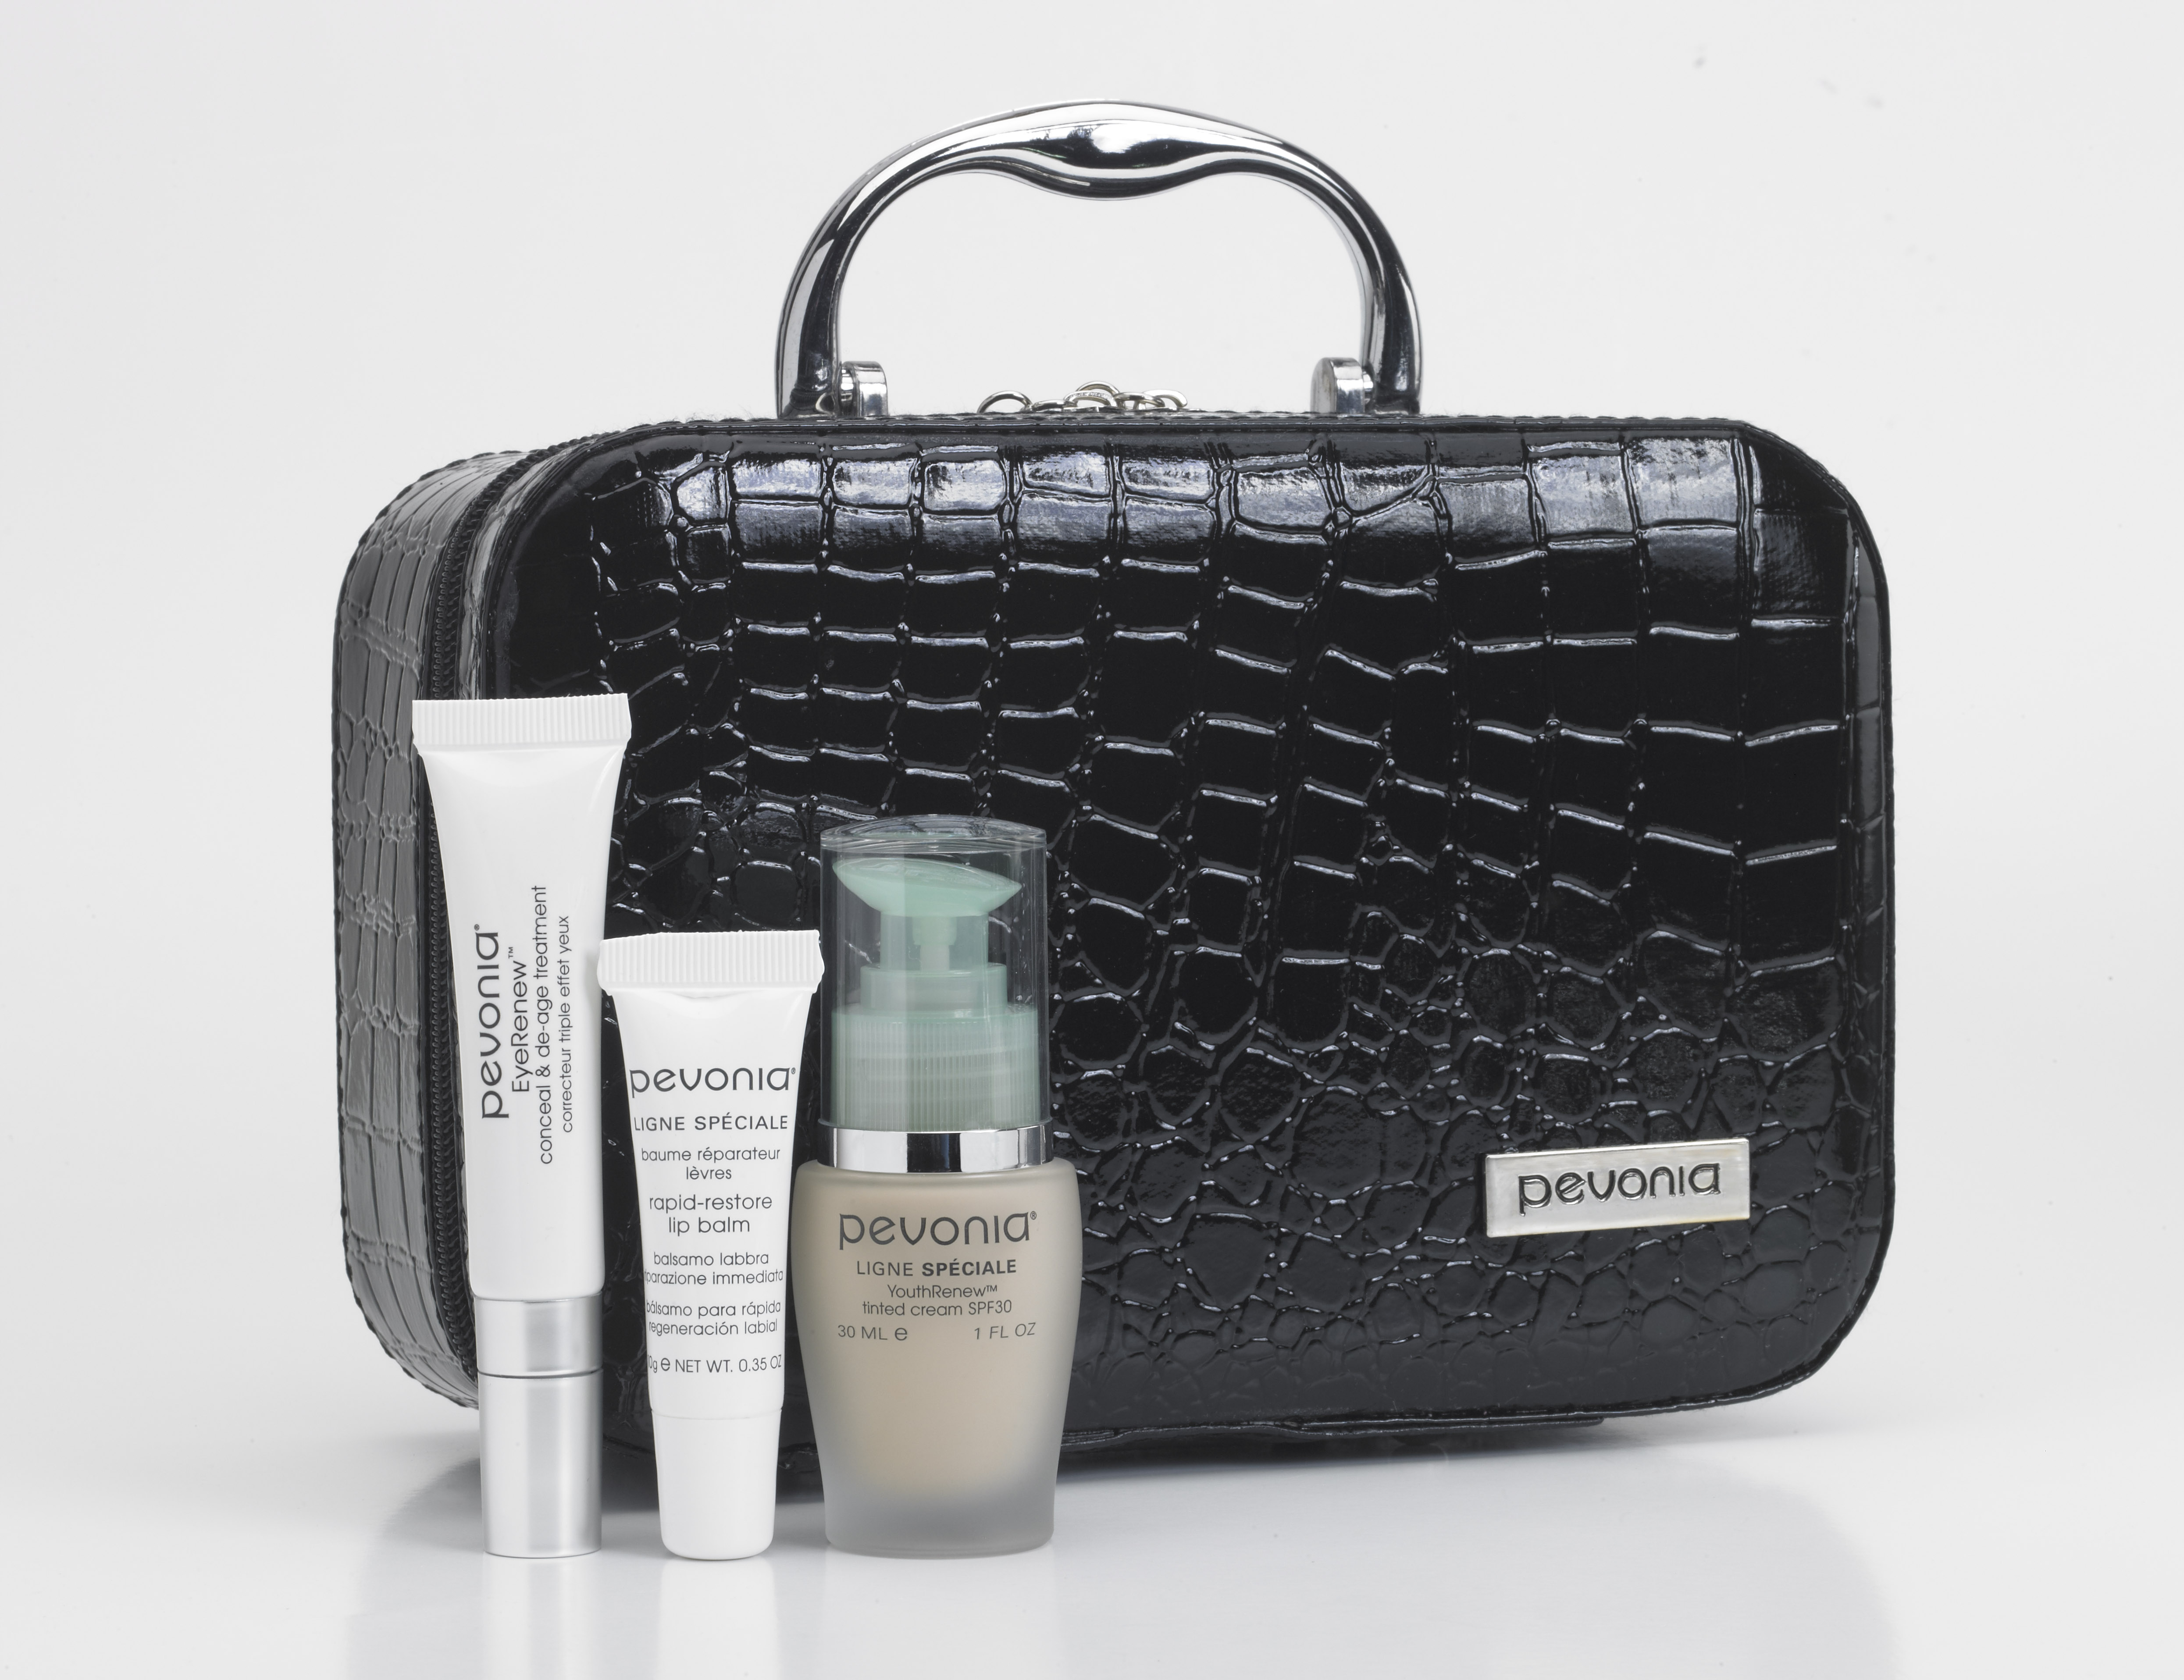 Win a Purse and Skincare Set from Pervonia! 04/15/2020 Giveaway Image